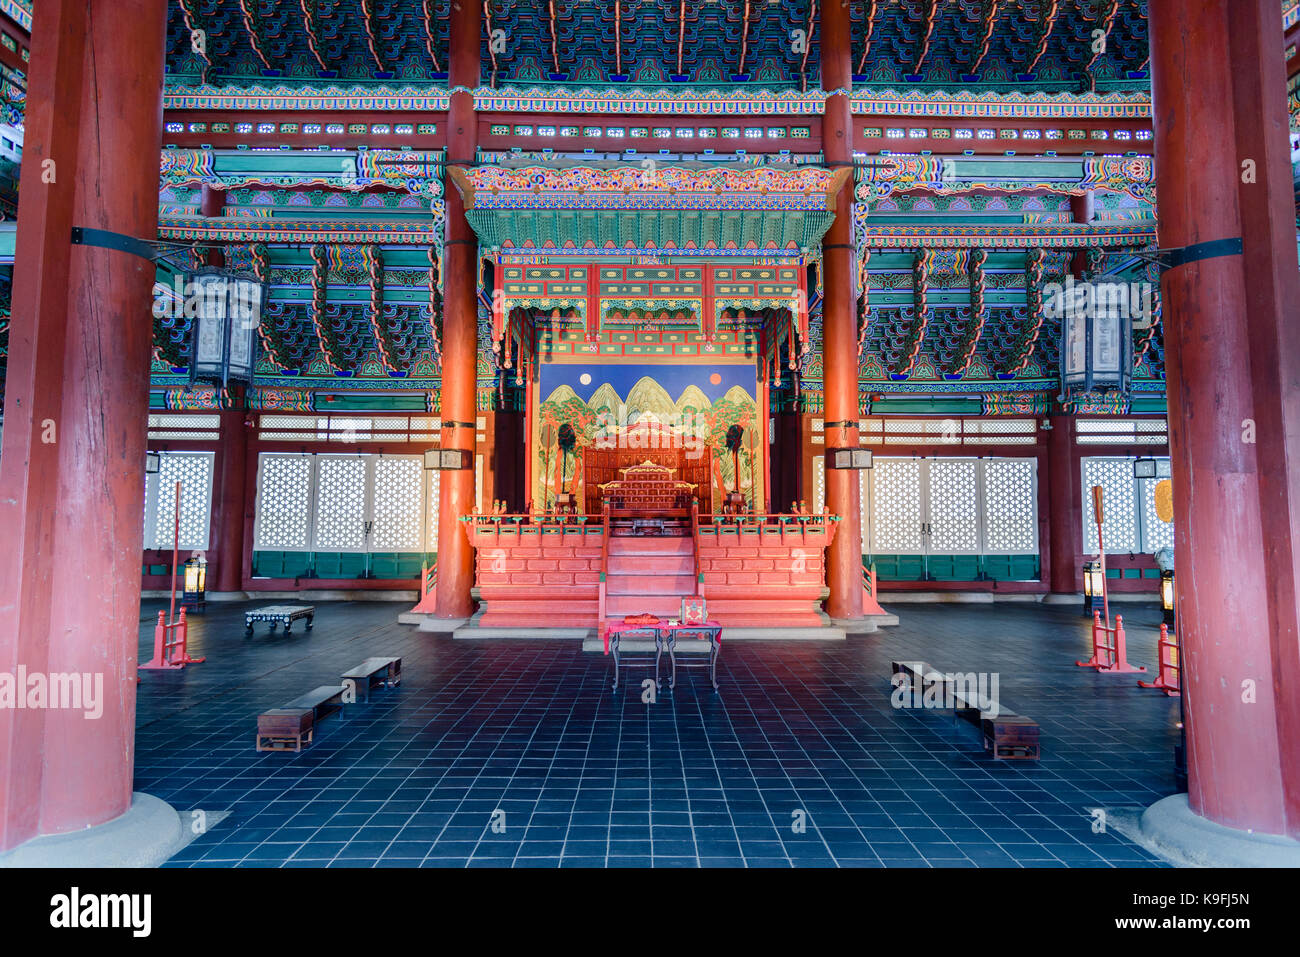 Palace architecture, the interiors of Geunjeongjeon in Gyeongbok palace in South Korea - Stock Image